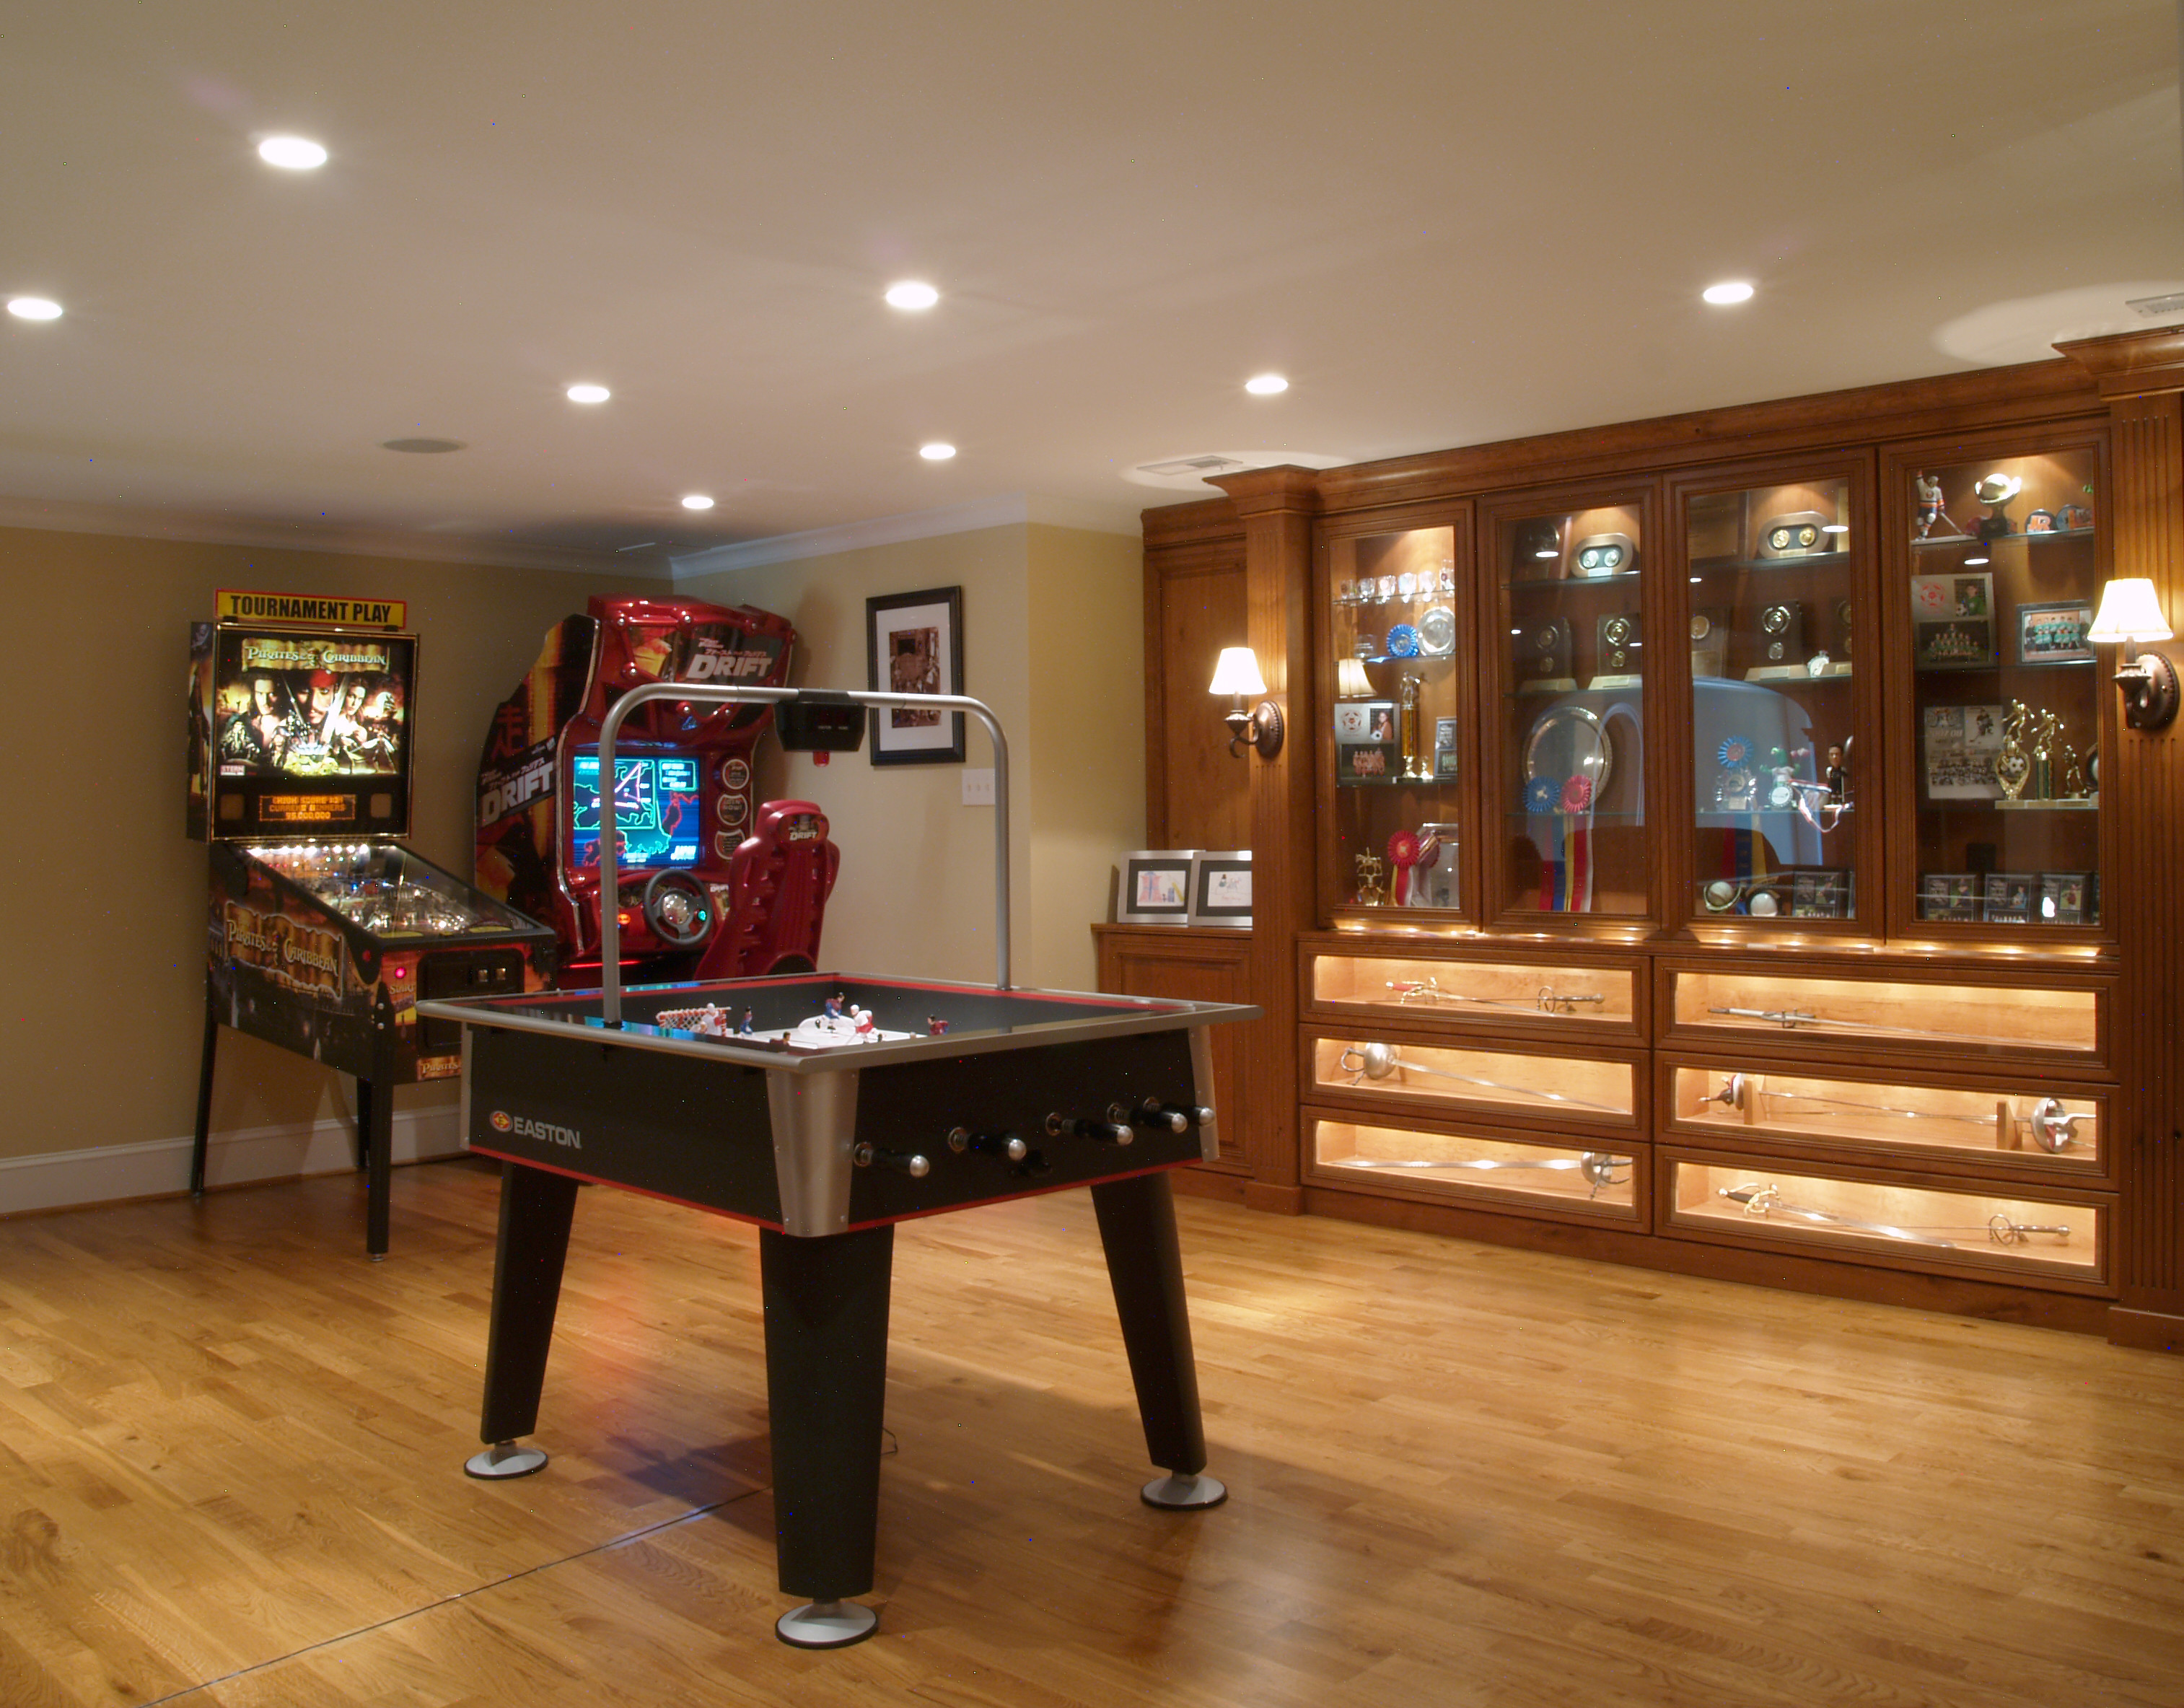 Best ideas about Basement Game Room . Save or Pin Finished Basement Game Room Now.